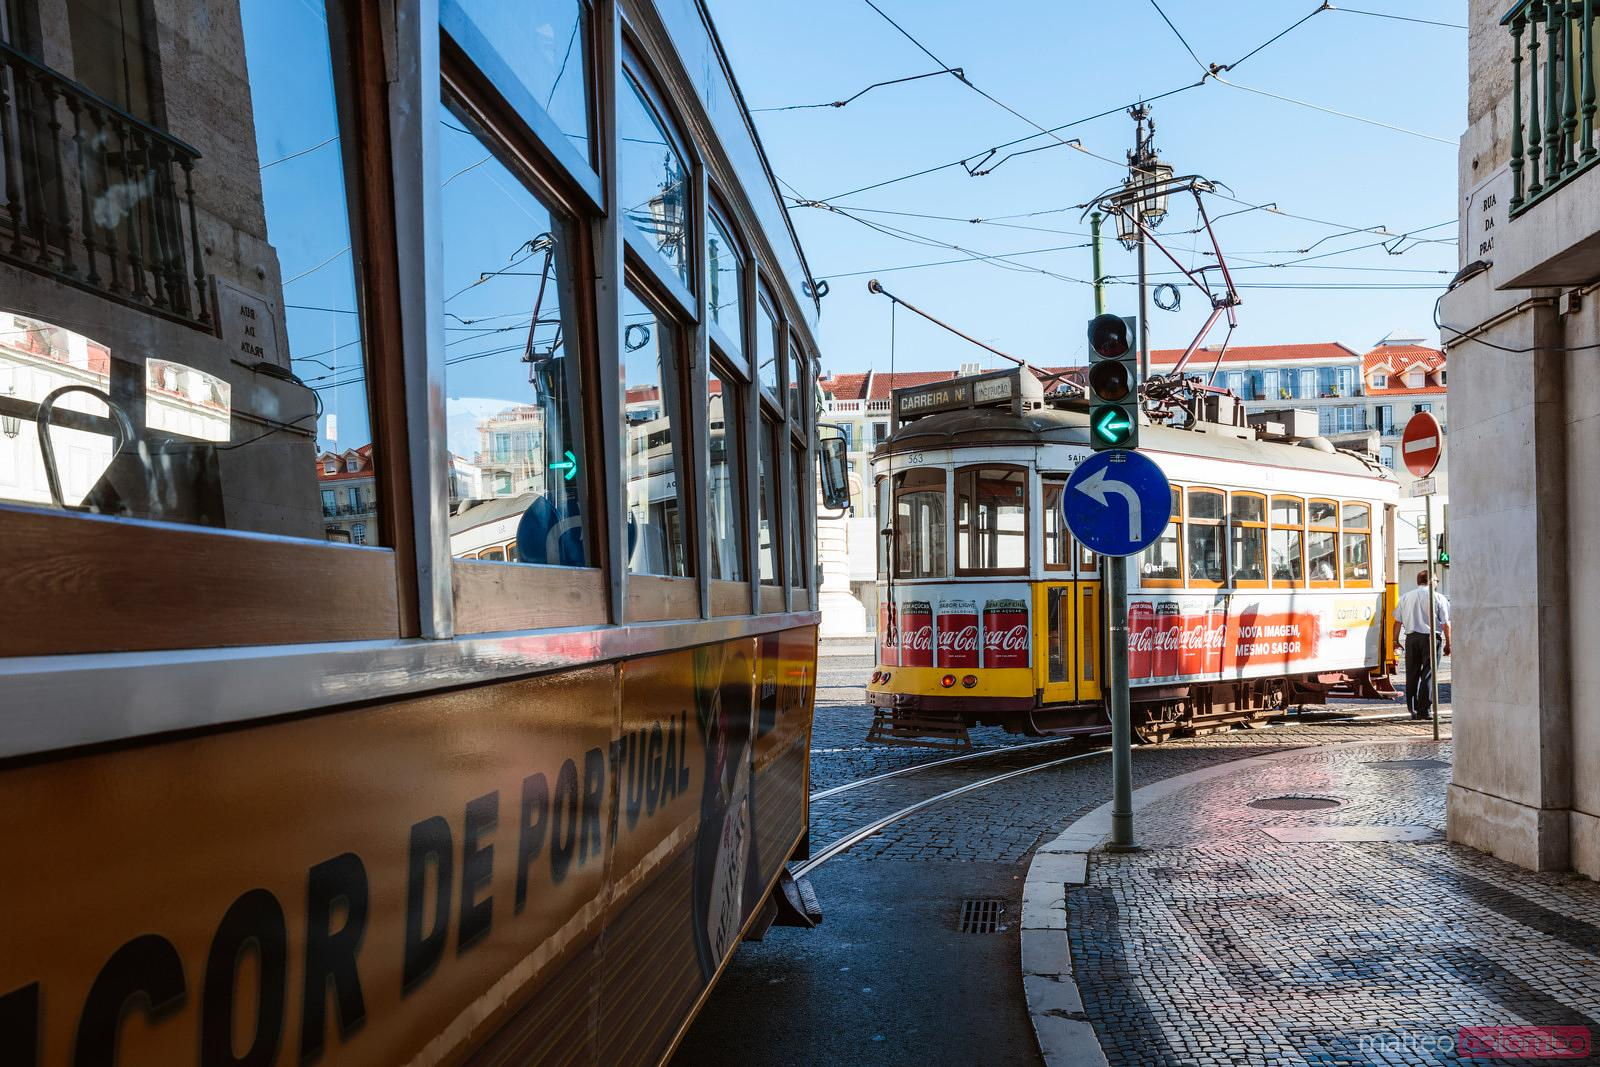 Trams lined up in the city center, Lisbon, Portugal